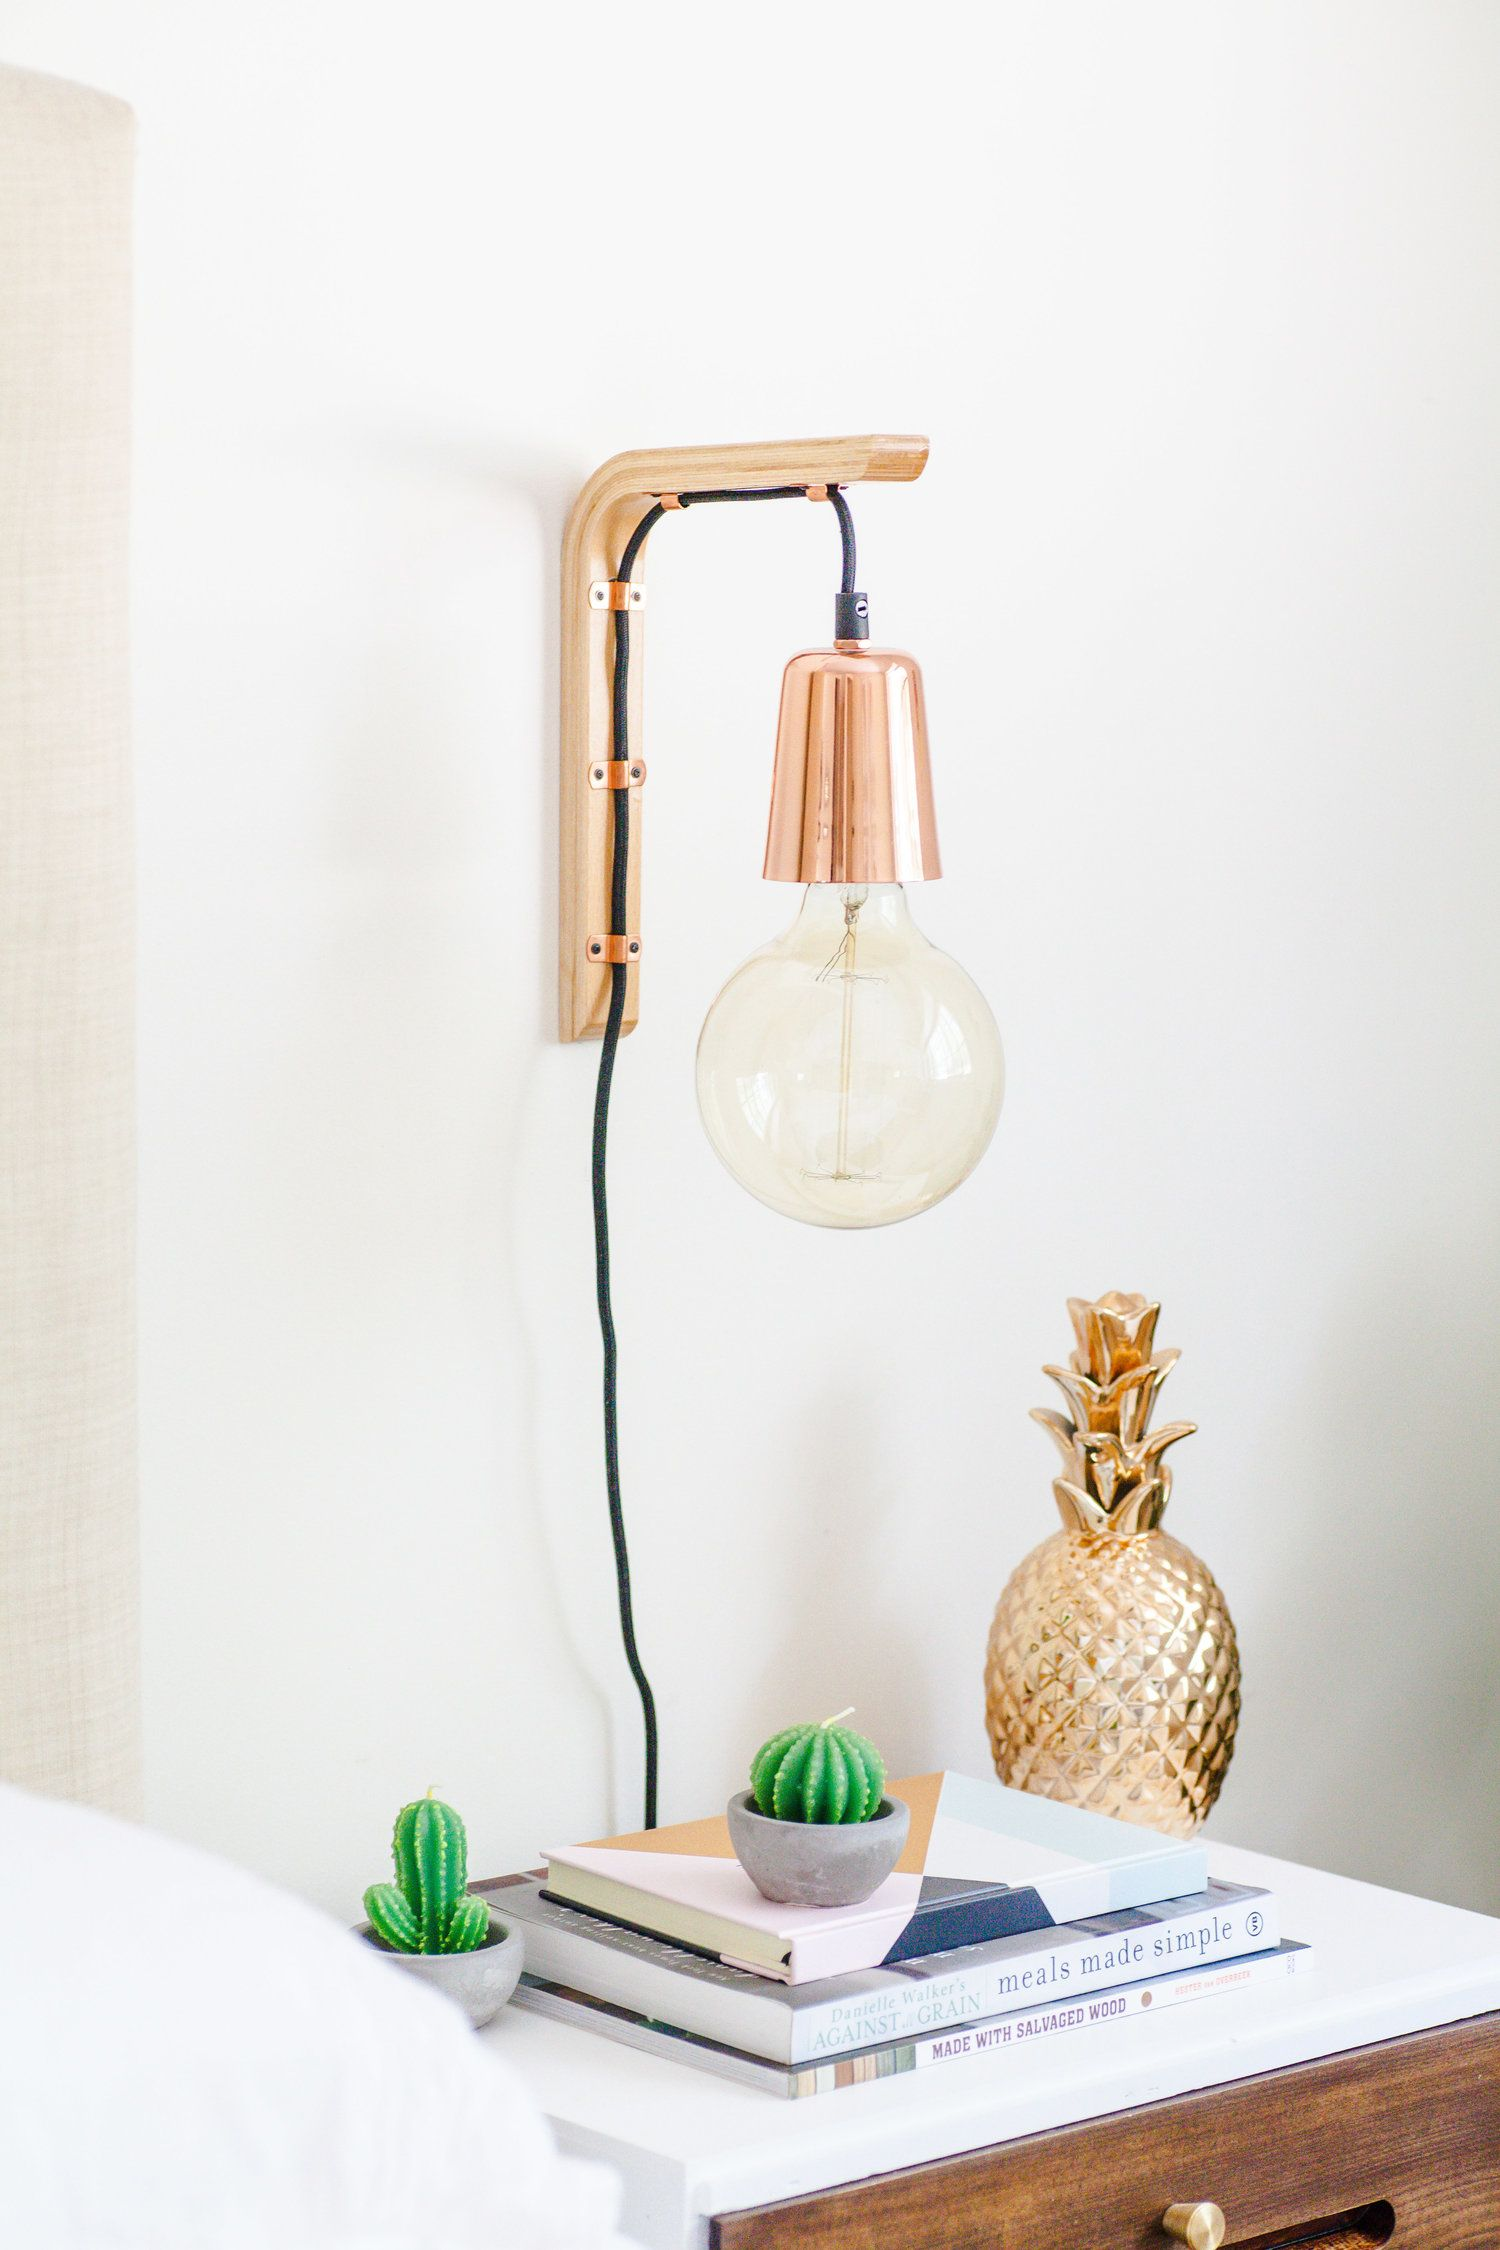 How To Make A Modern Hanging Wooden Wall Bracket Light The Whimsical Wife Cook Create Decorate Bracket Lights Diy Pendant Light Diy Decor